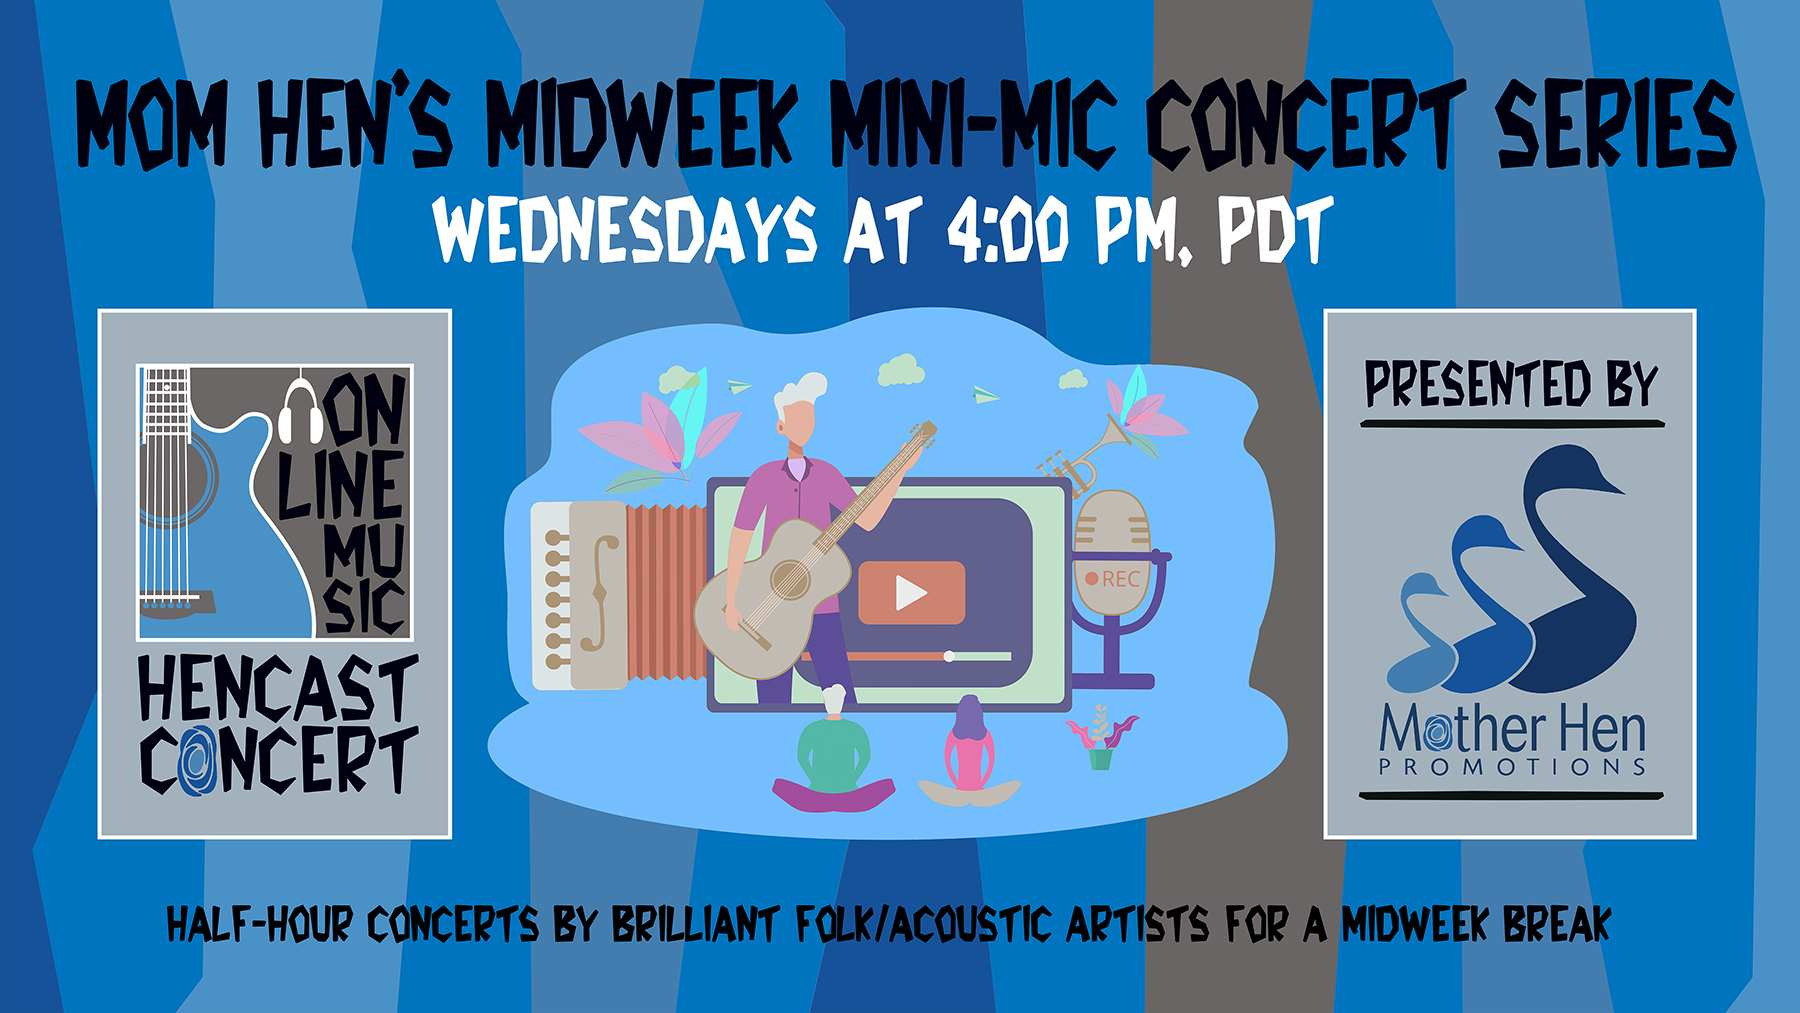 Mini Mic midweek concerts